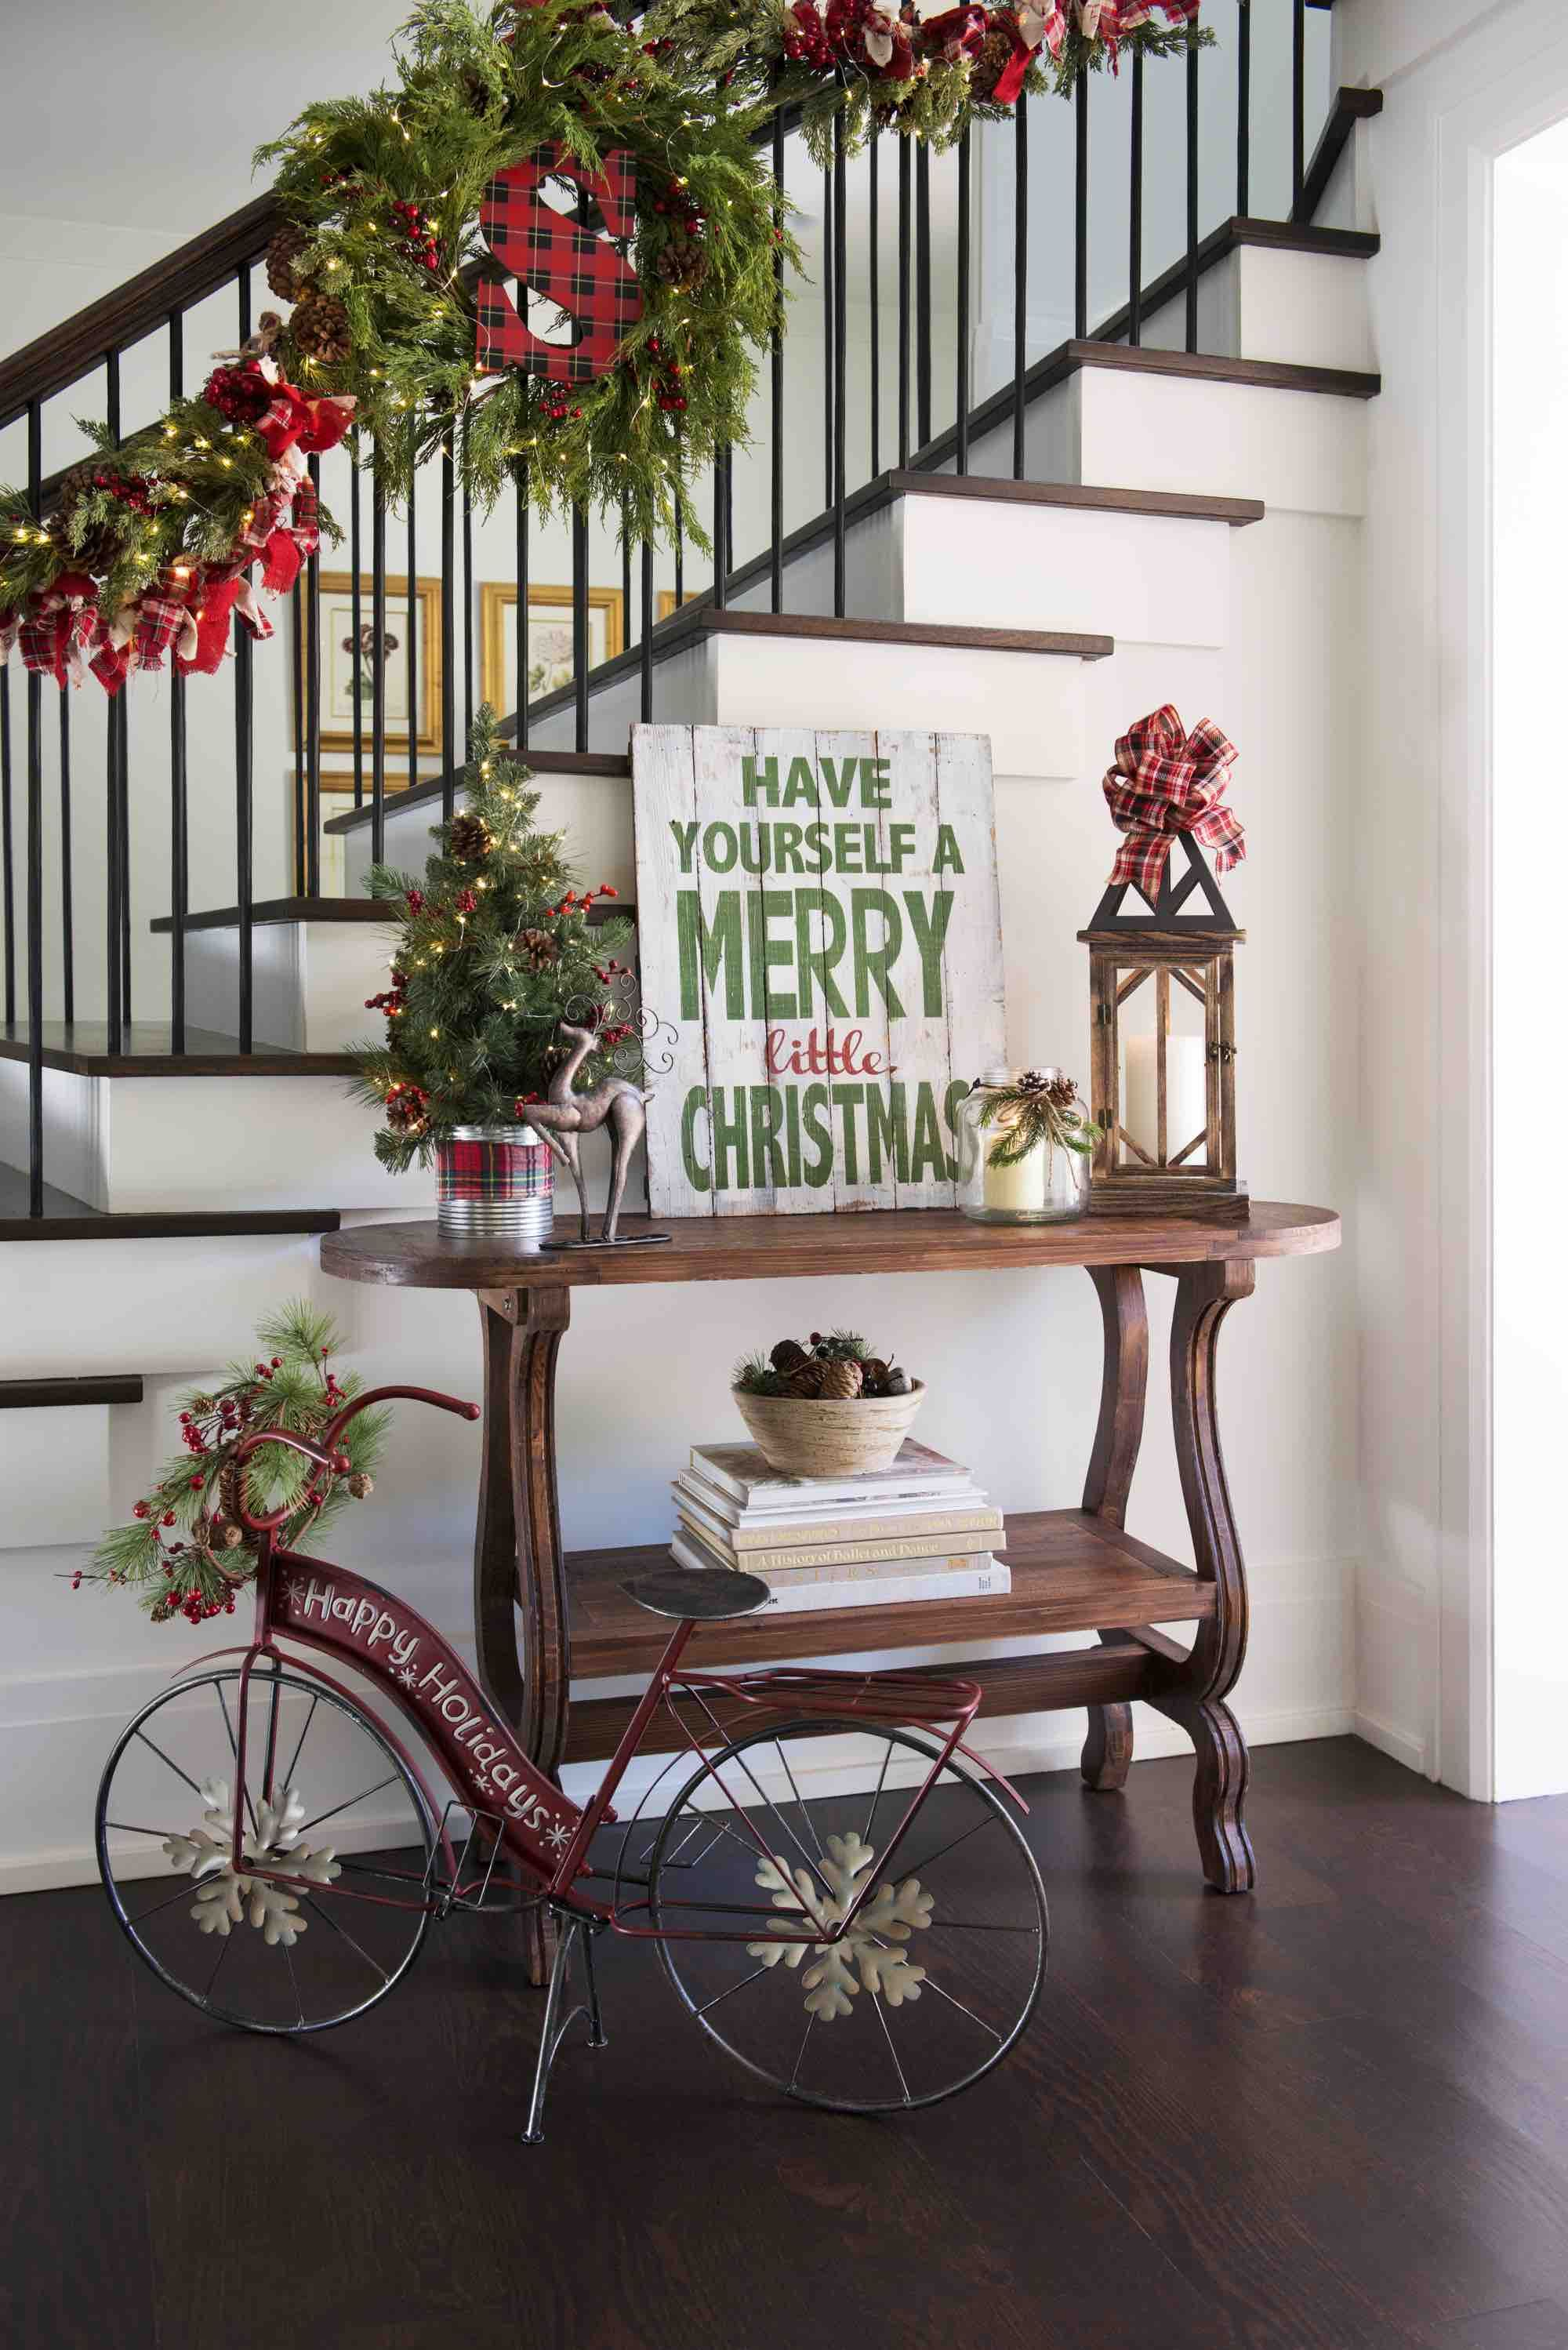 greet guests every day with a holiday themed entryway shop kirklands christmasland collection and learn best practices by reading our christmas entryway